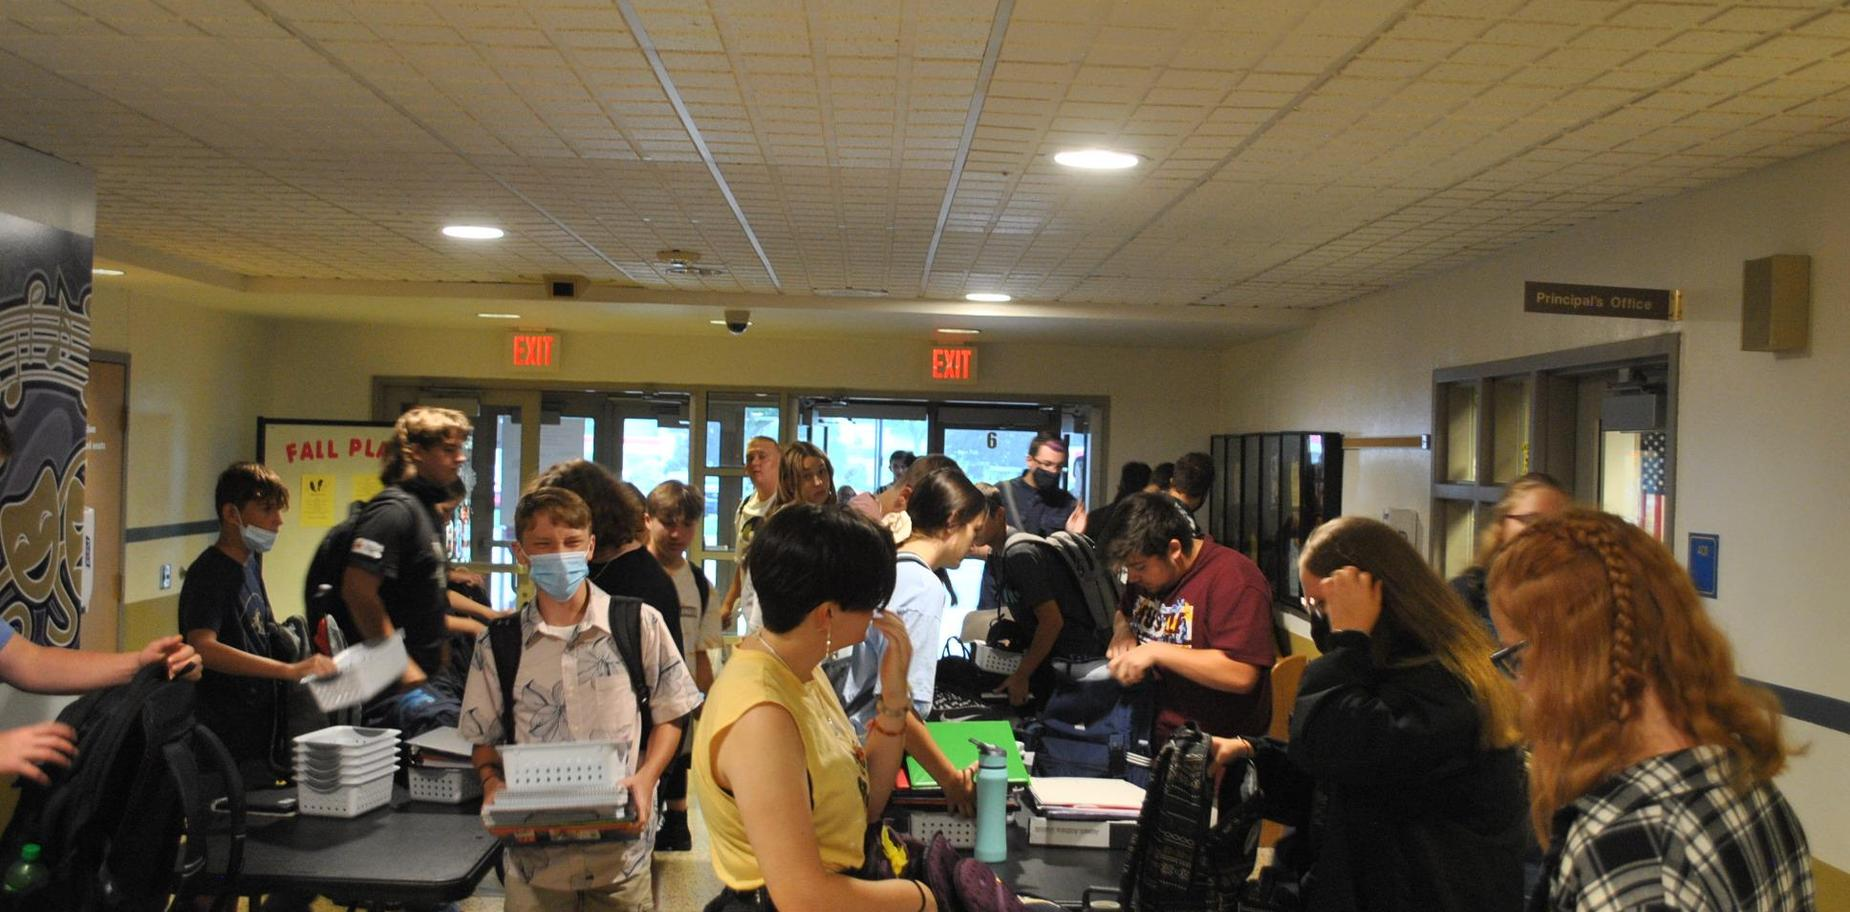 Students at metal detectors on first day of school